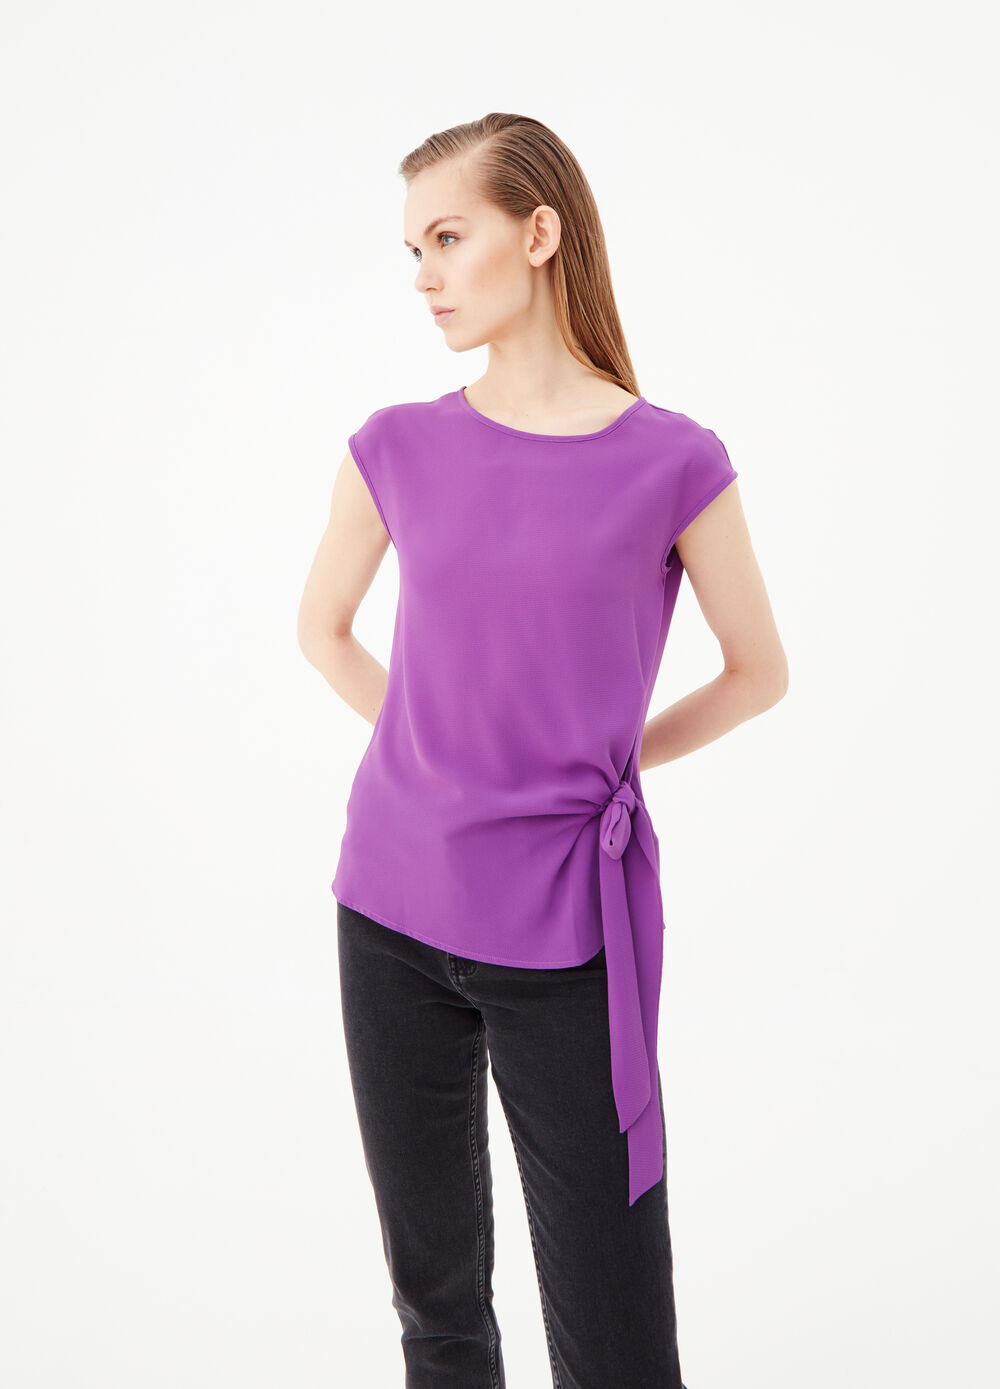 Blouse with cap sleeves and knotted detail